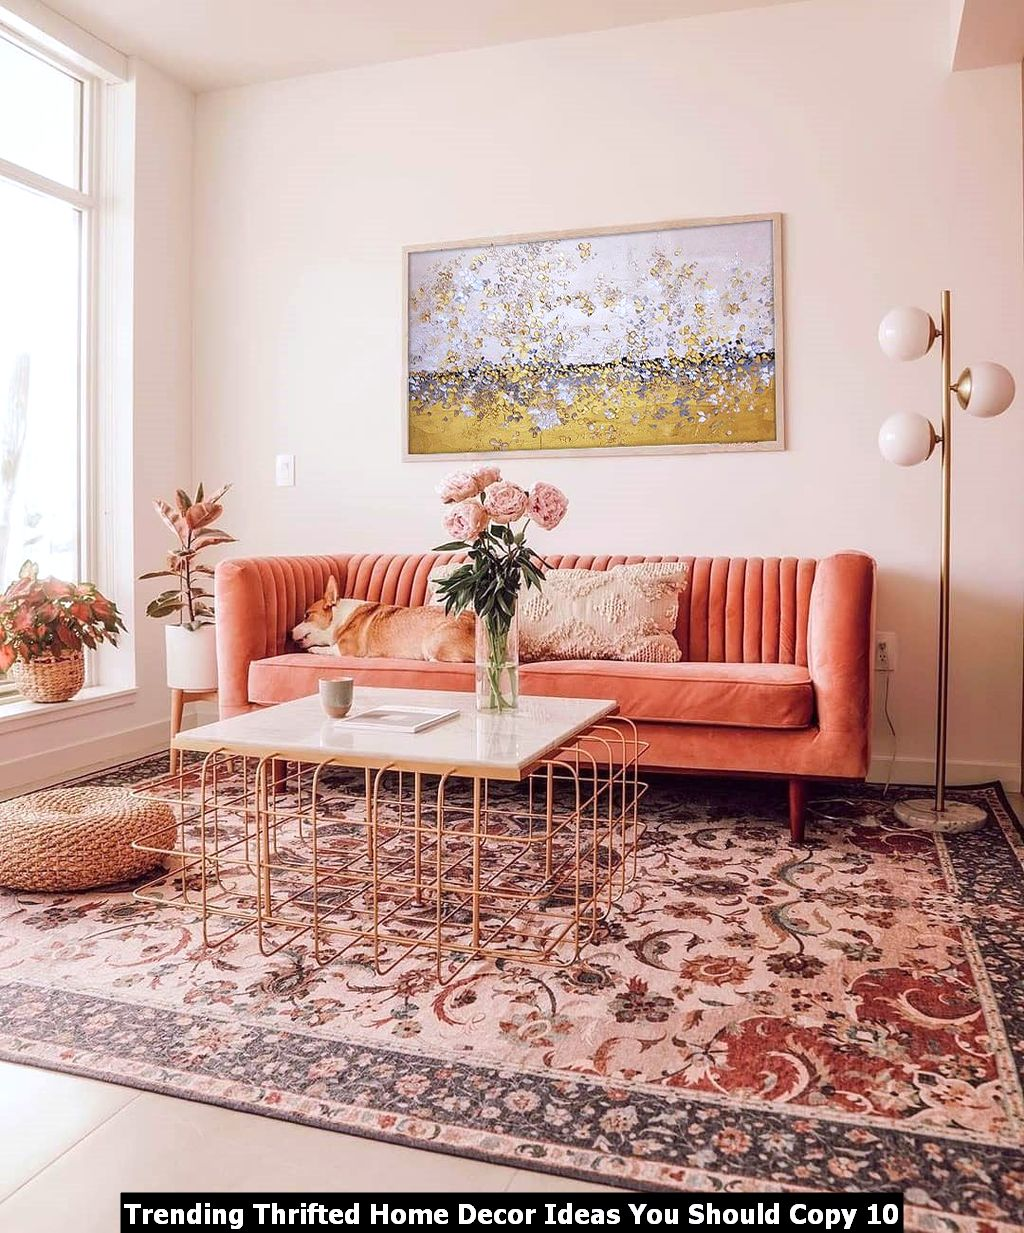 Trending Thrifted Home Decor Ideas You Should Copy 10